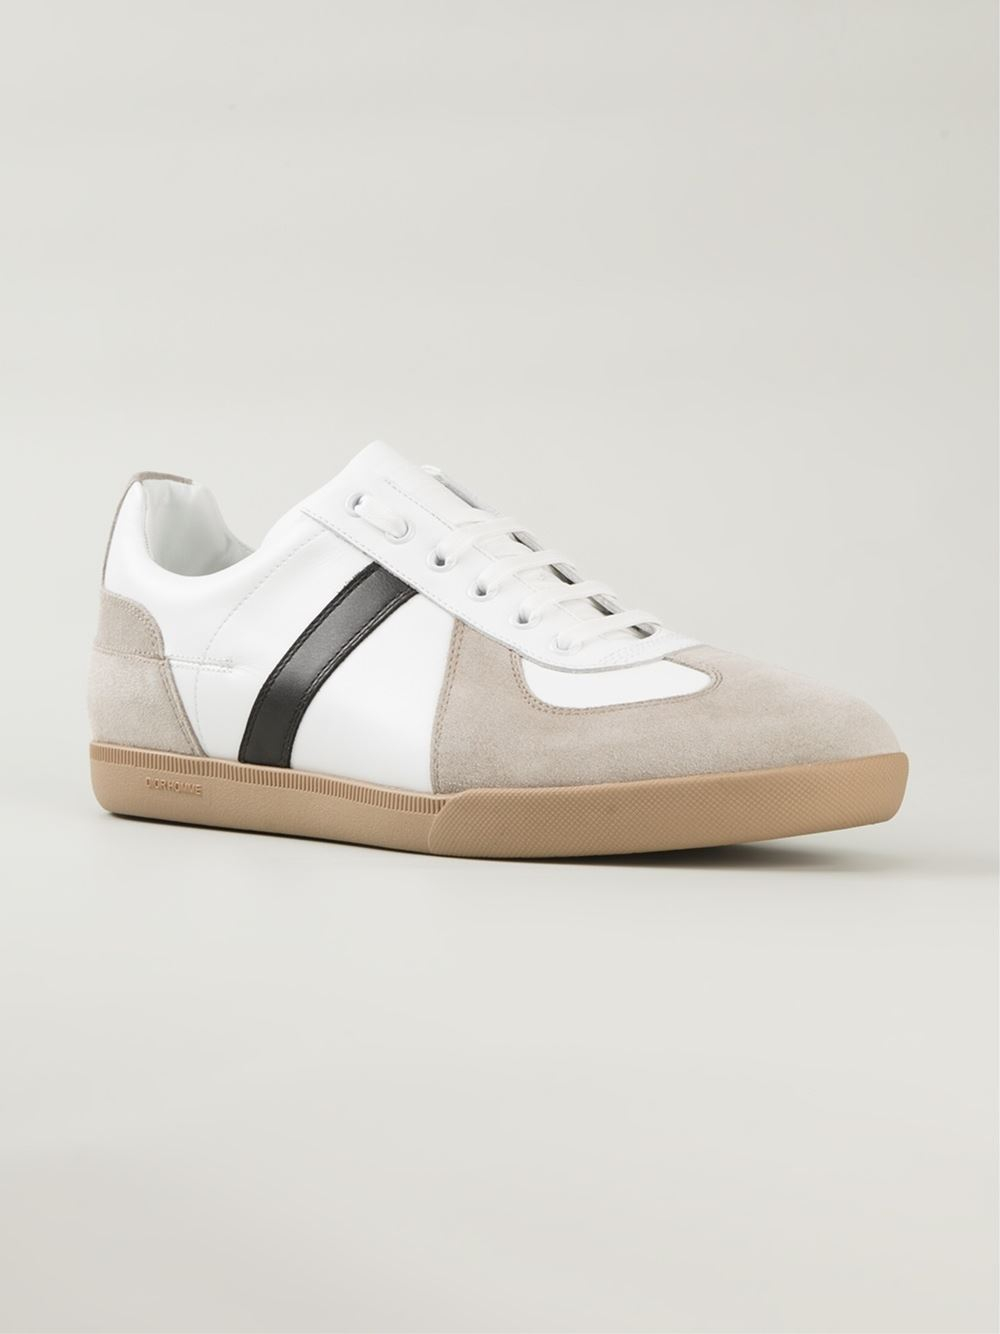 Lyst - Dior Homme Panelled Sneakers in Natural for Men 6774e32d7e1